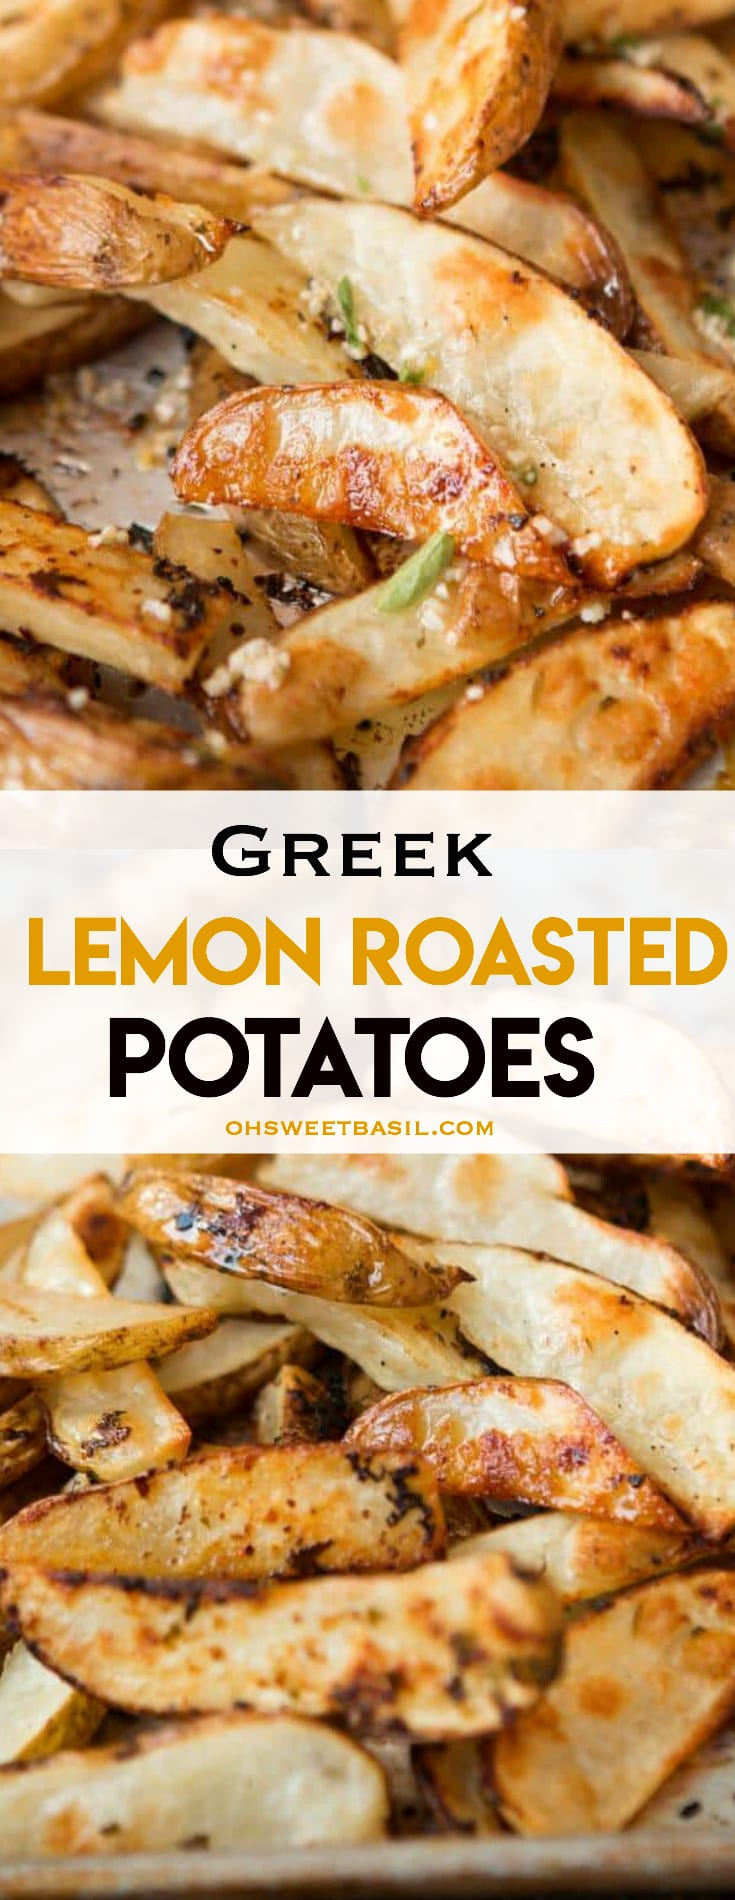 Greek lemon roasted potatoes on a sheet pan